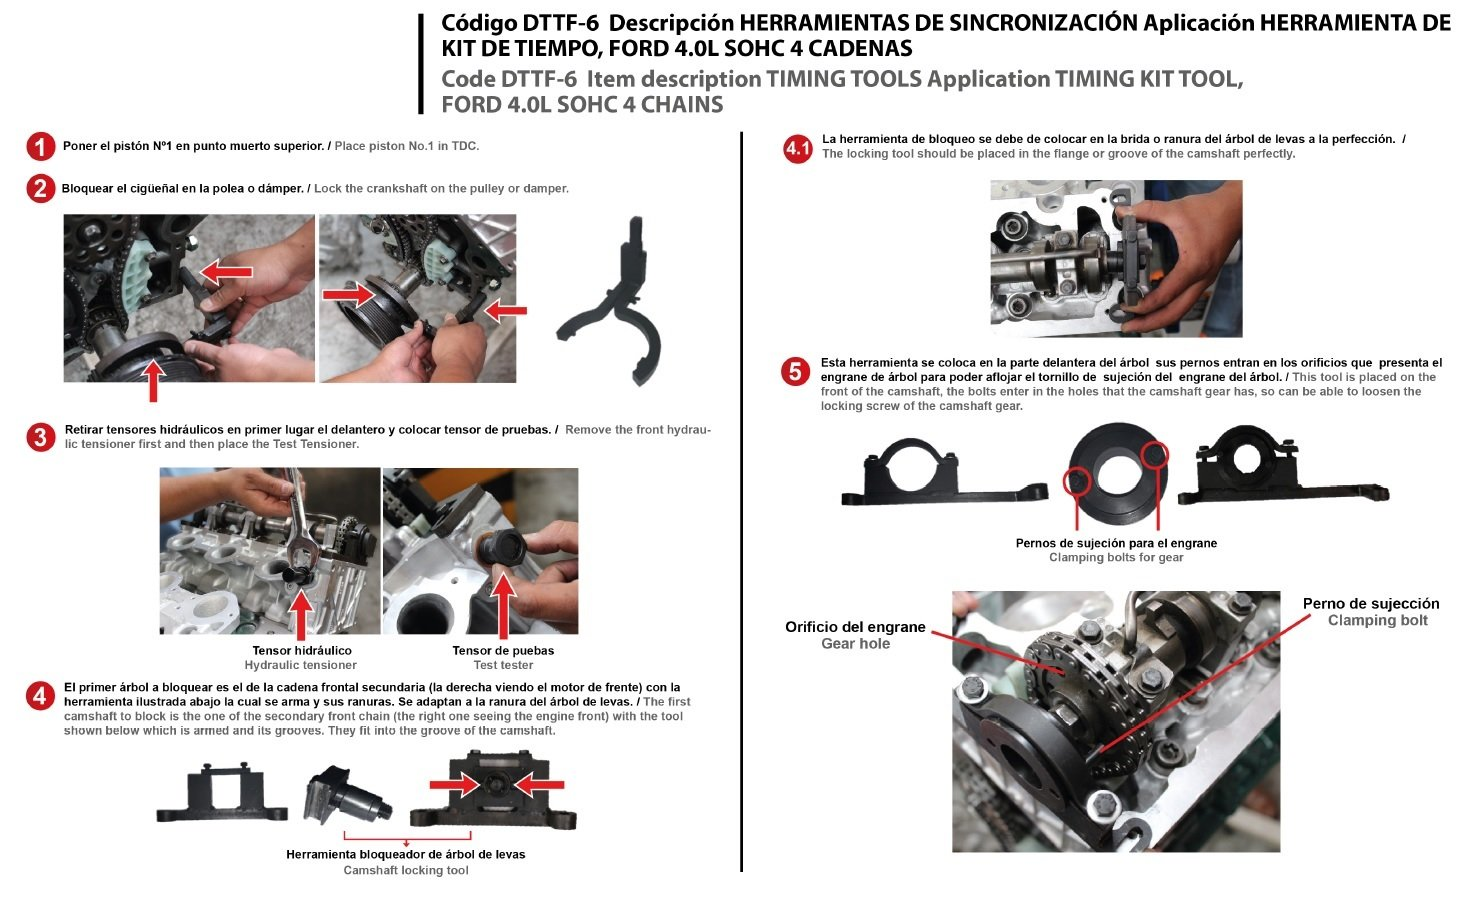 Ford Installation Timing Kit Repair Tools Explorer Mercury Mountaineer Electrical Troubleshooting Manual Mustang Ranger L3 Mazda B4000 Land Rover V6 Sohc 40l 4015cc Chain